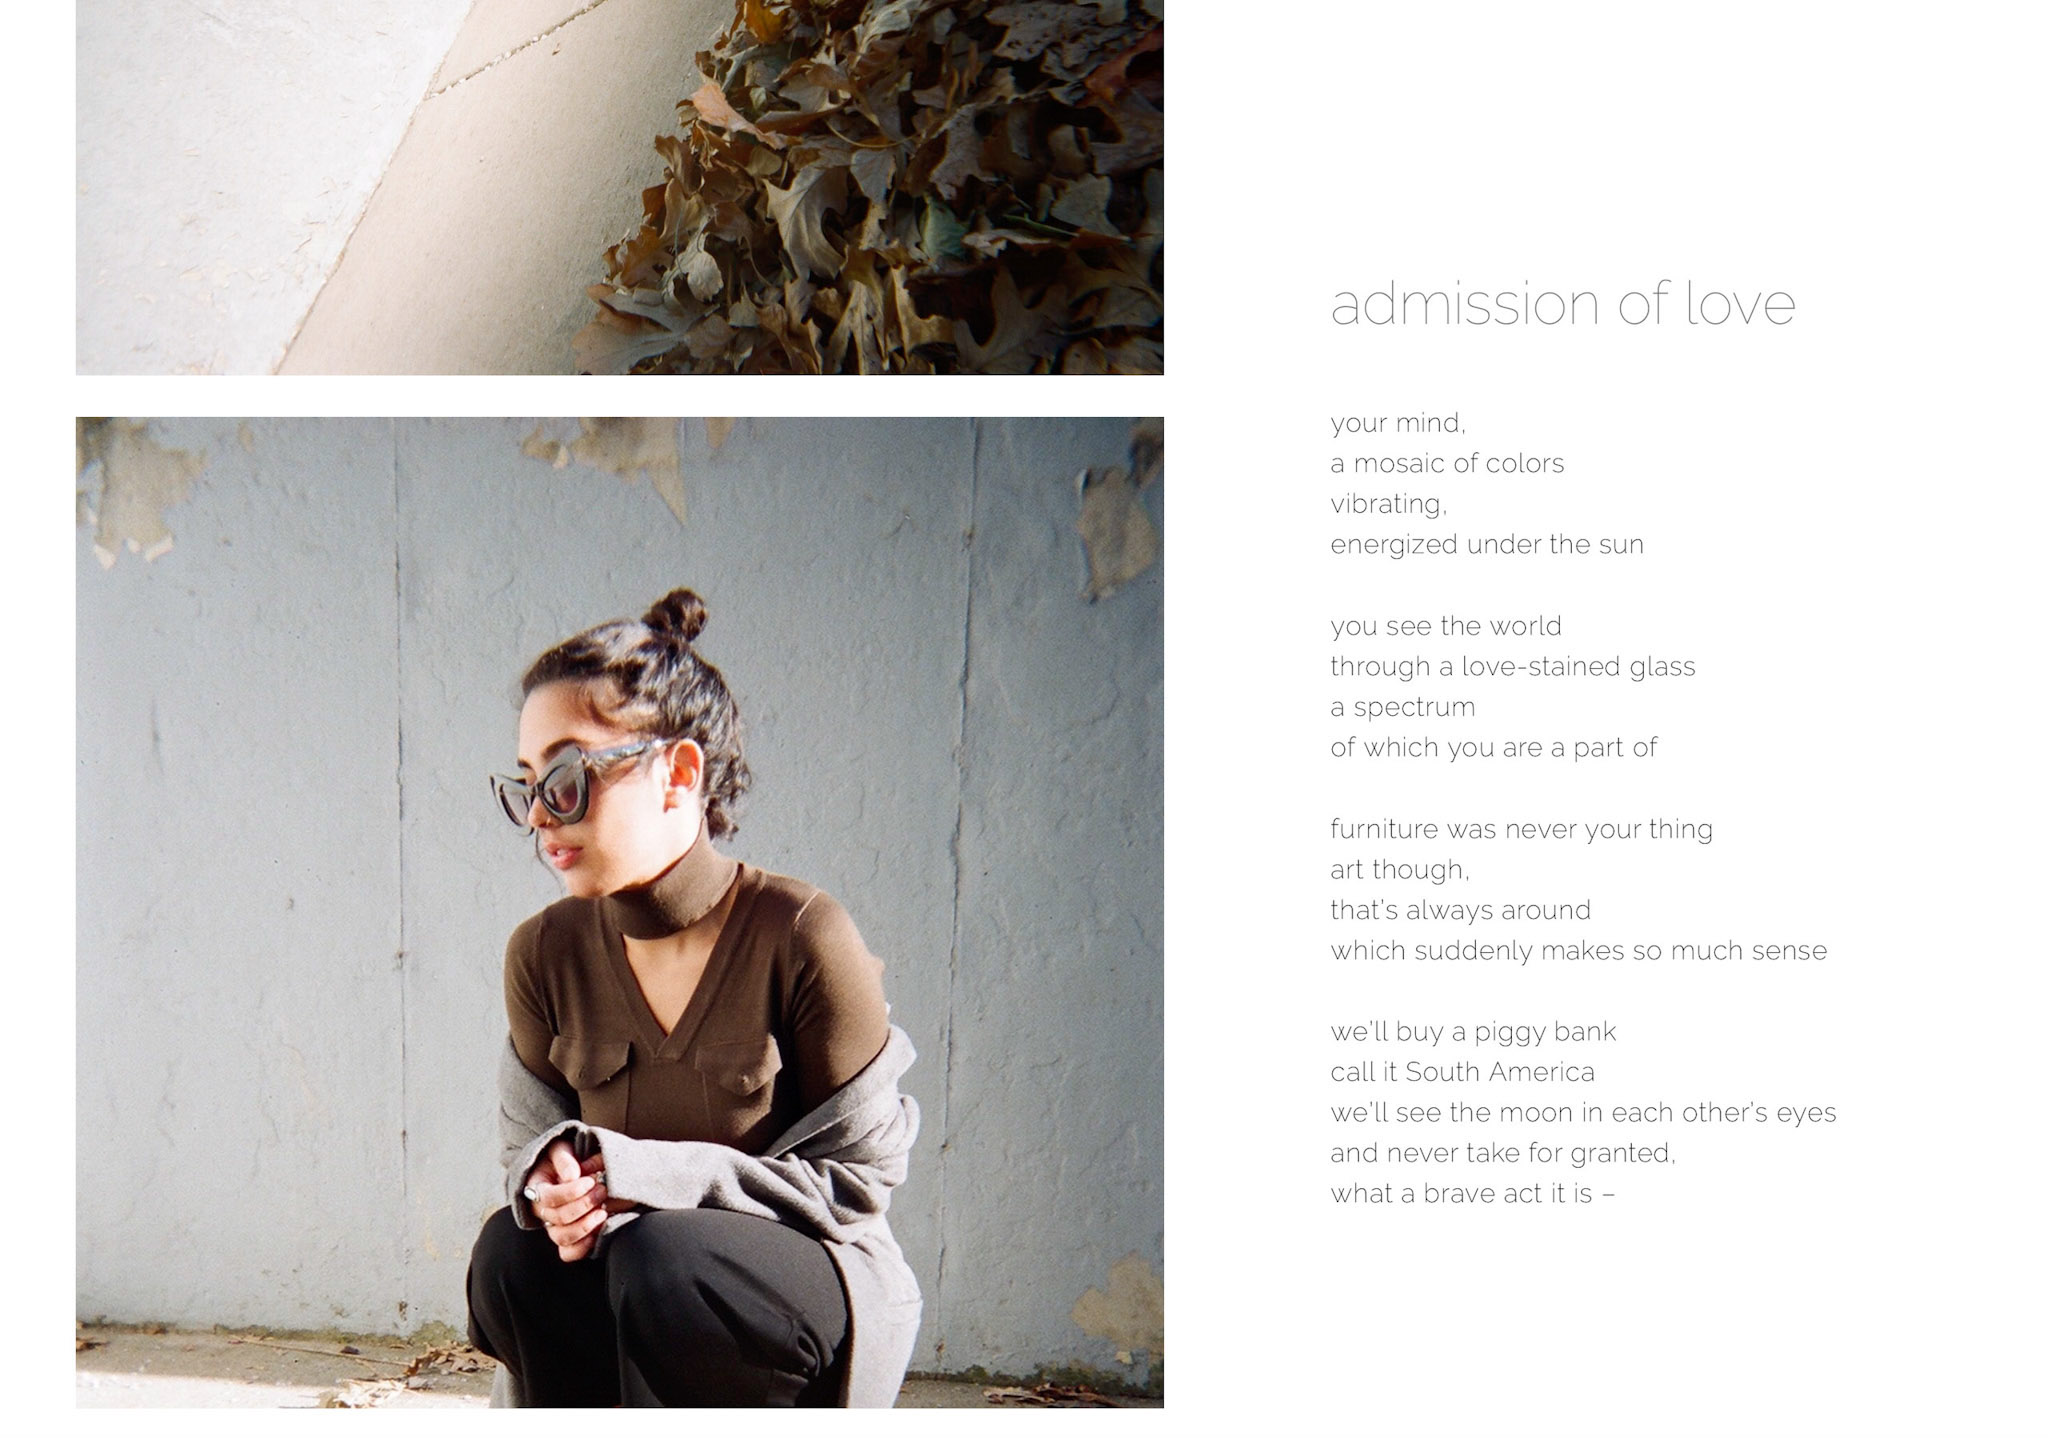 - This image shows that the poetic-verse associated with each post, stays fixed when scrolling through Shooka's fashion photography.